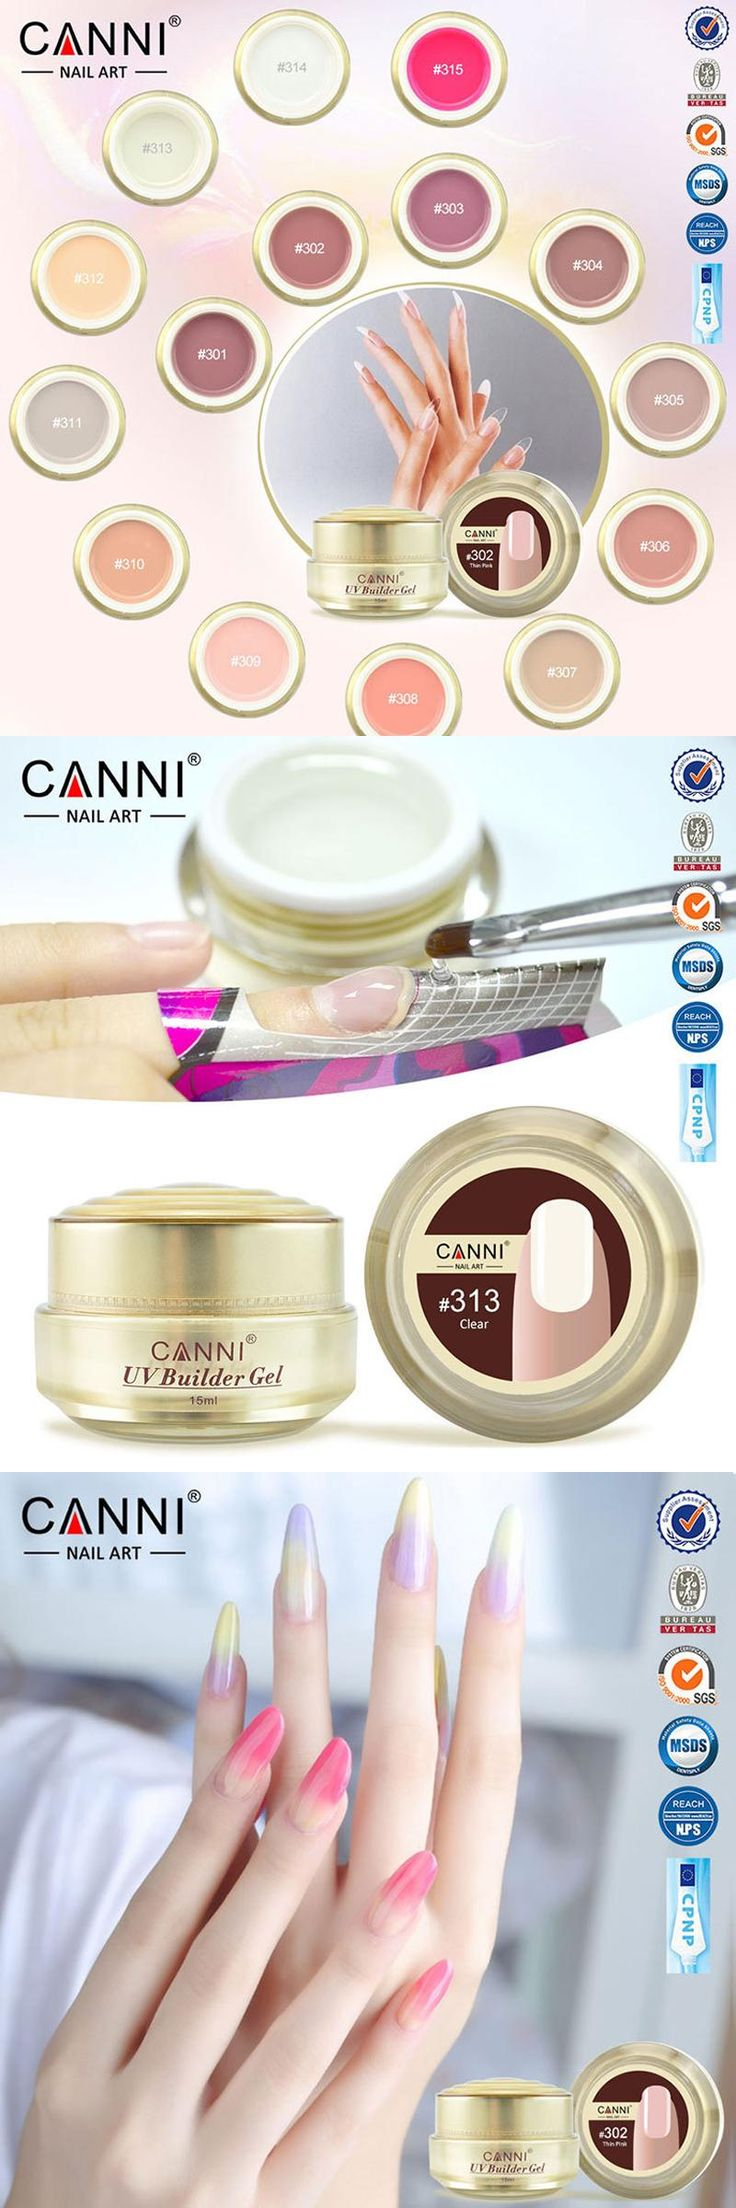 [Visit to Buy] Gel Nail Polish Bling Canni Professional Nails UV Led Builder Clear Color Ongle Unhas De Gel 2016 French Art Soak Off Nagel 15ml #Advertisement